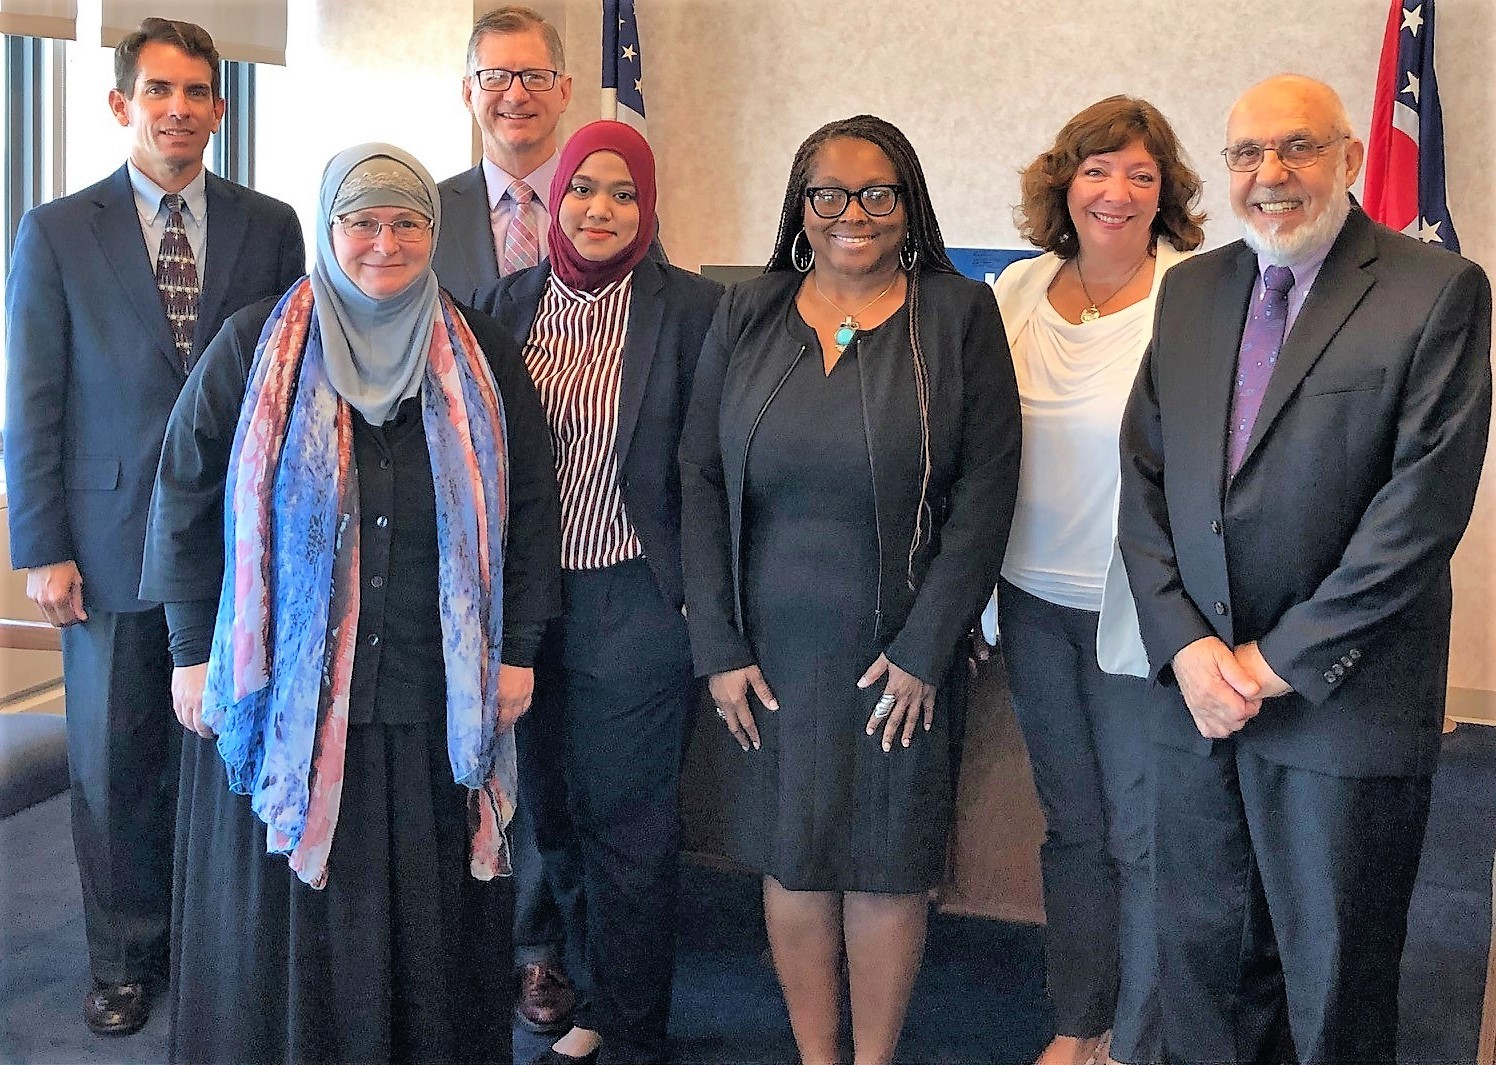 UCC and CAIR officials visit Sen. Portman's CLE office, 8/29/19